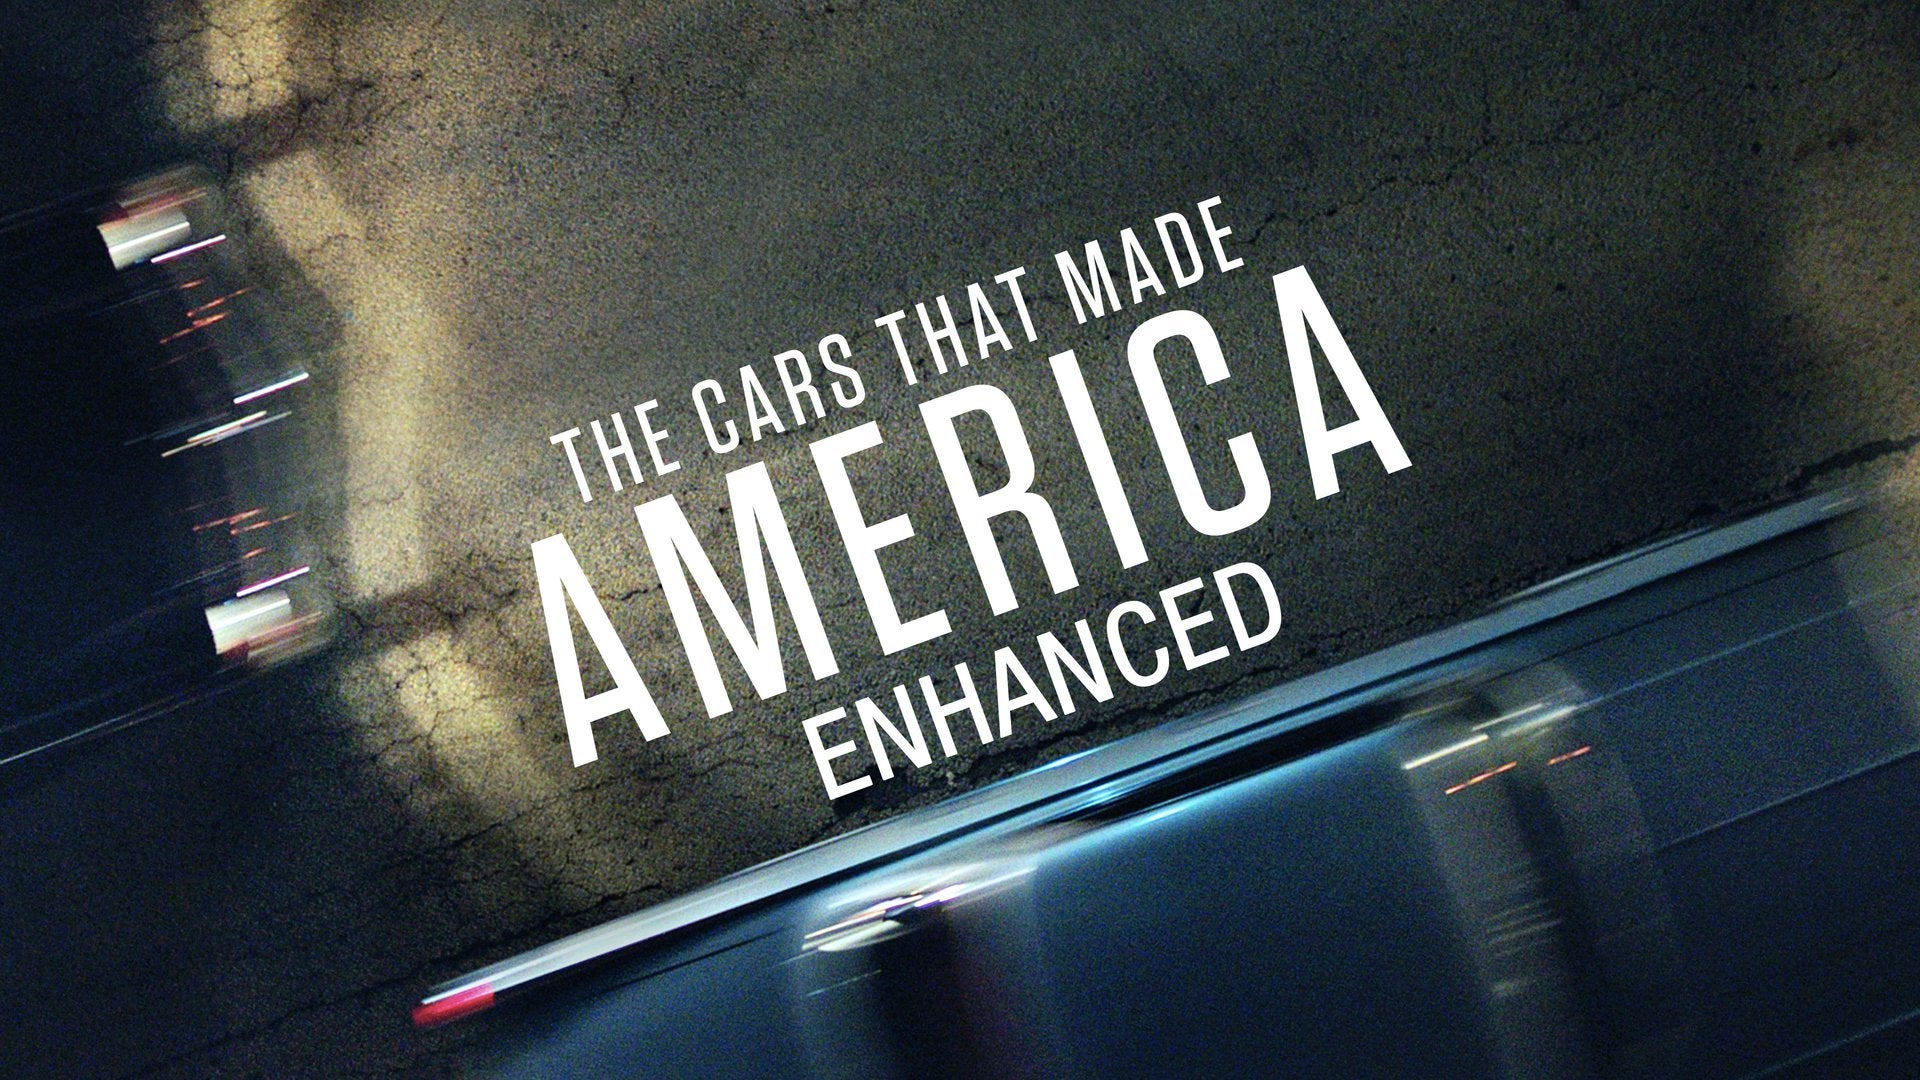 The Cars That Made America: Enhanced